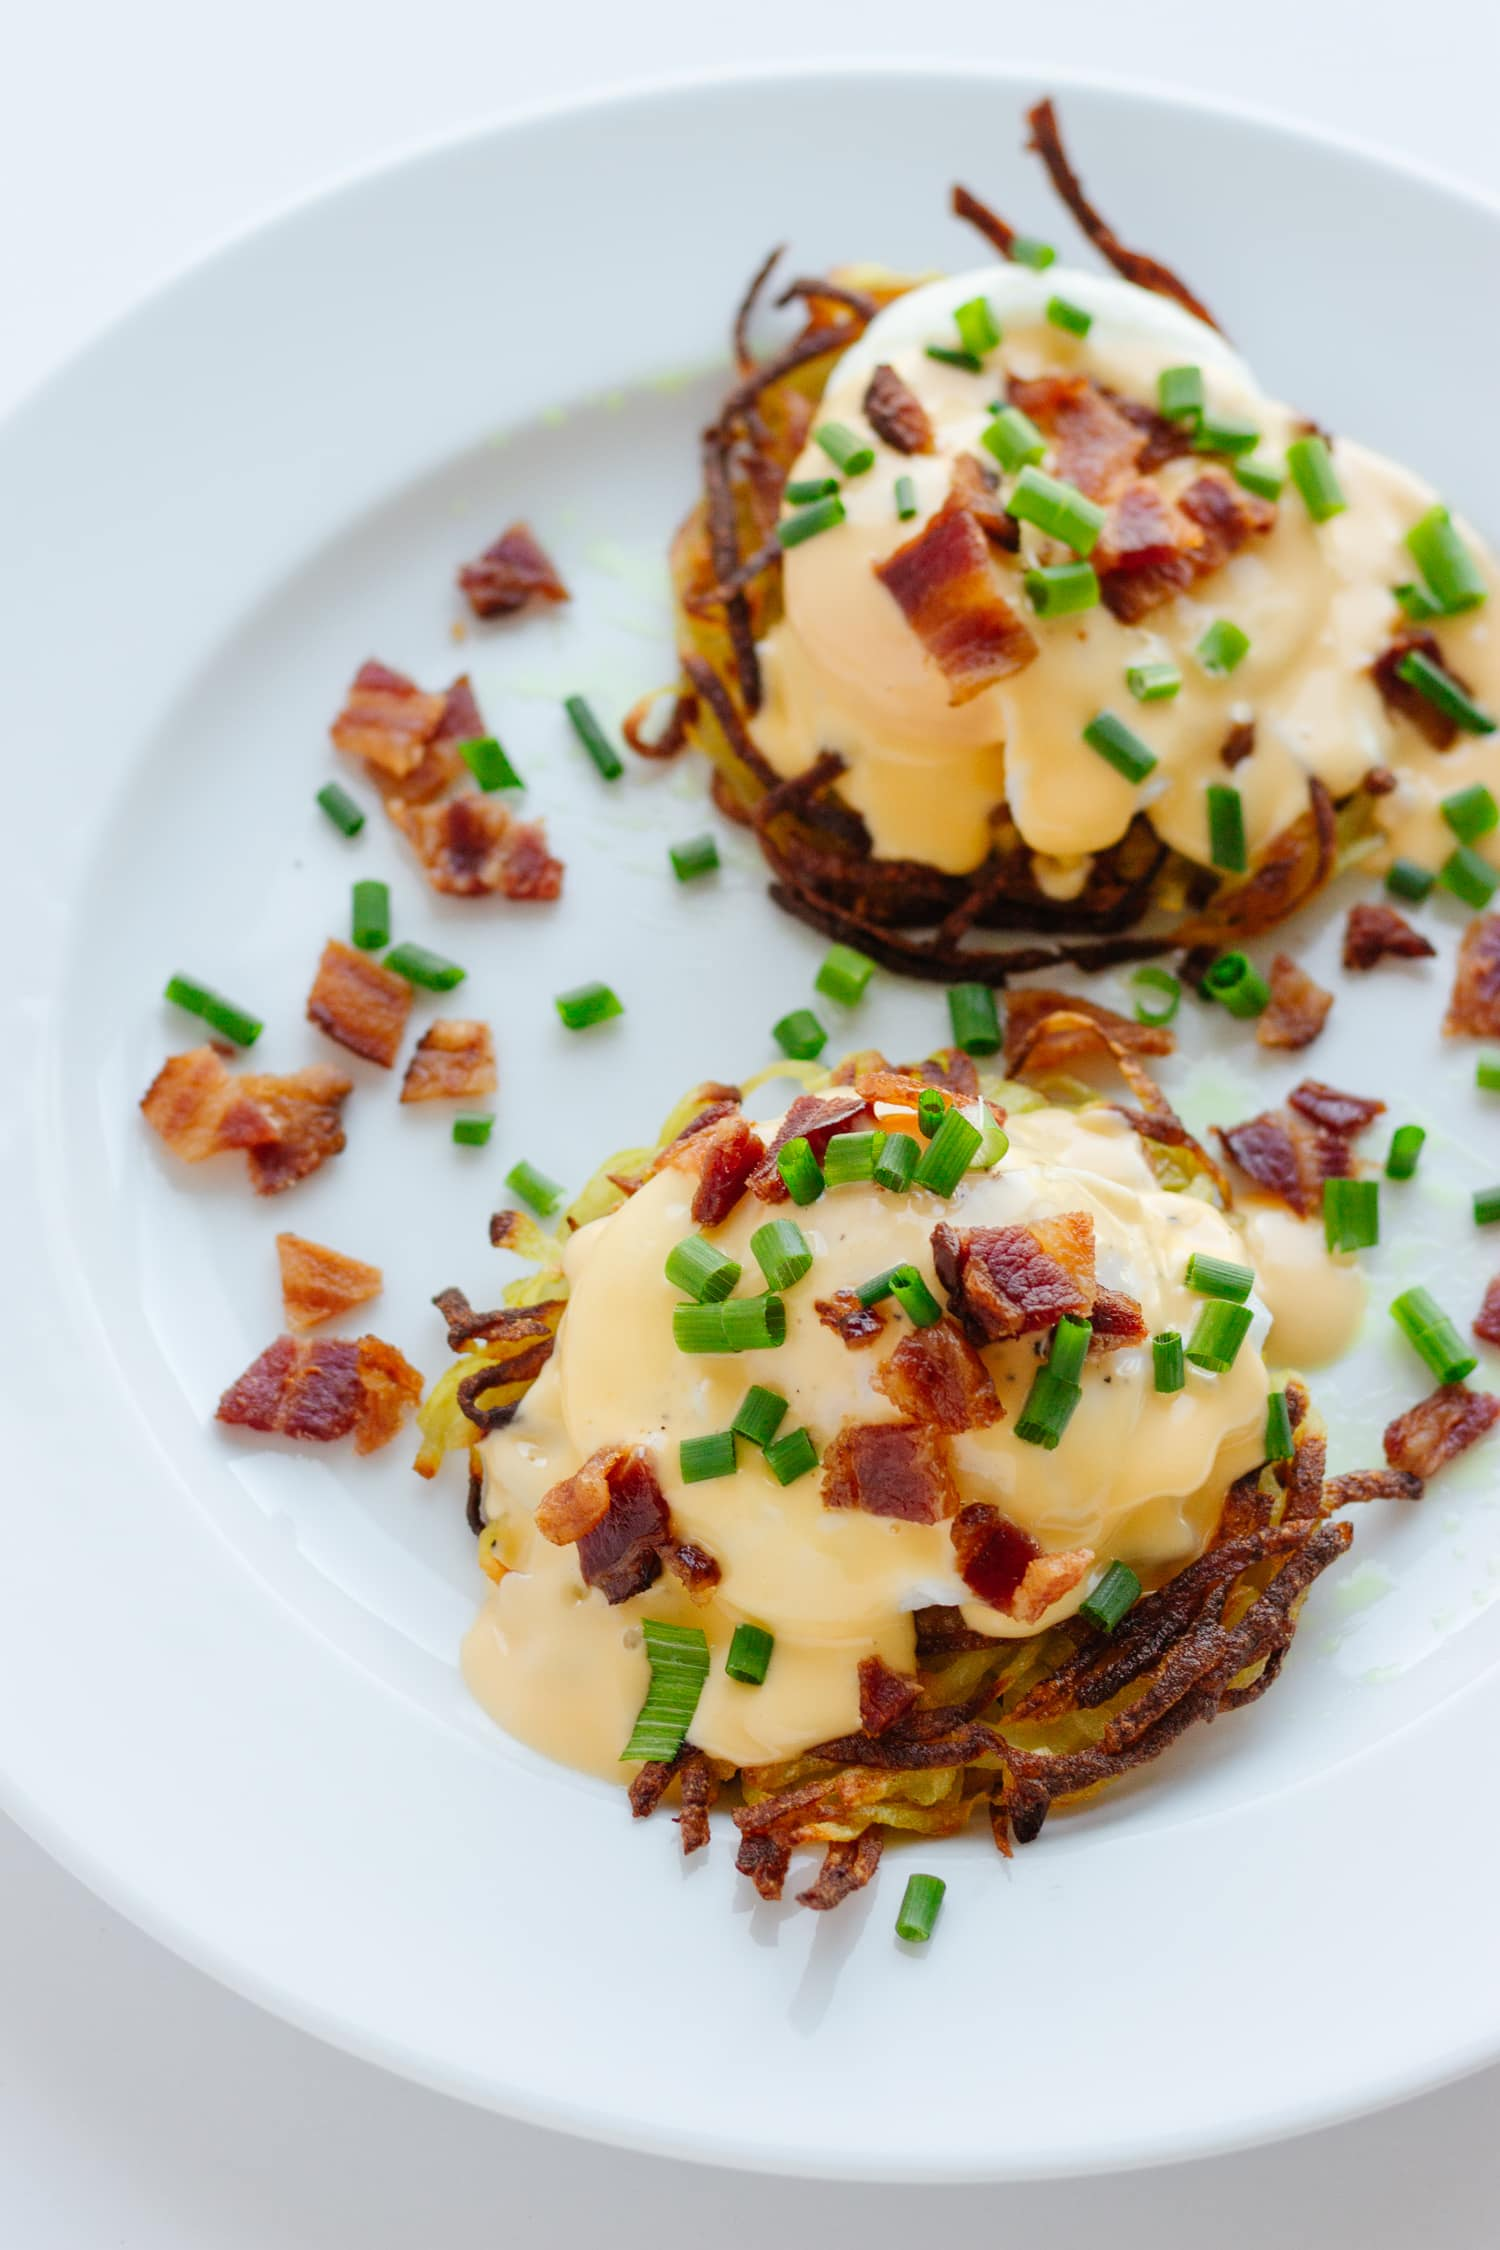 Two rosti eggs benedict on a white plate with bacon bits and chopped chives scattered over